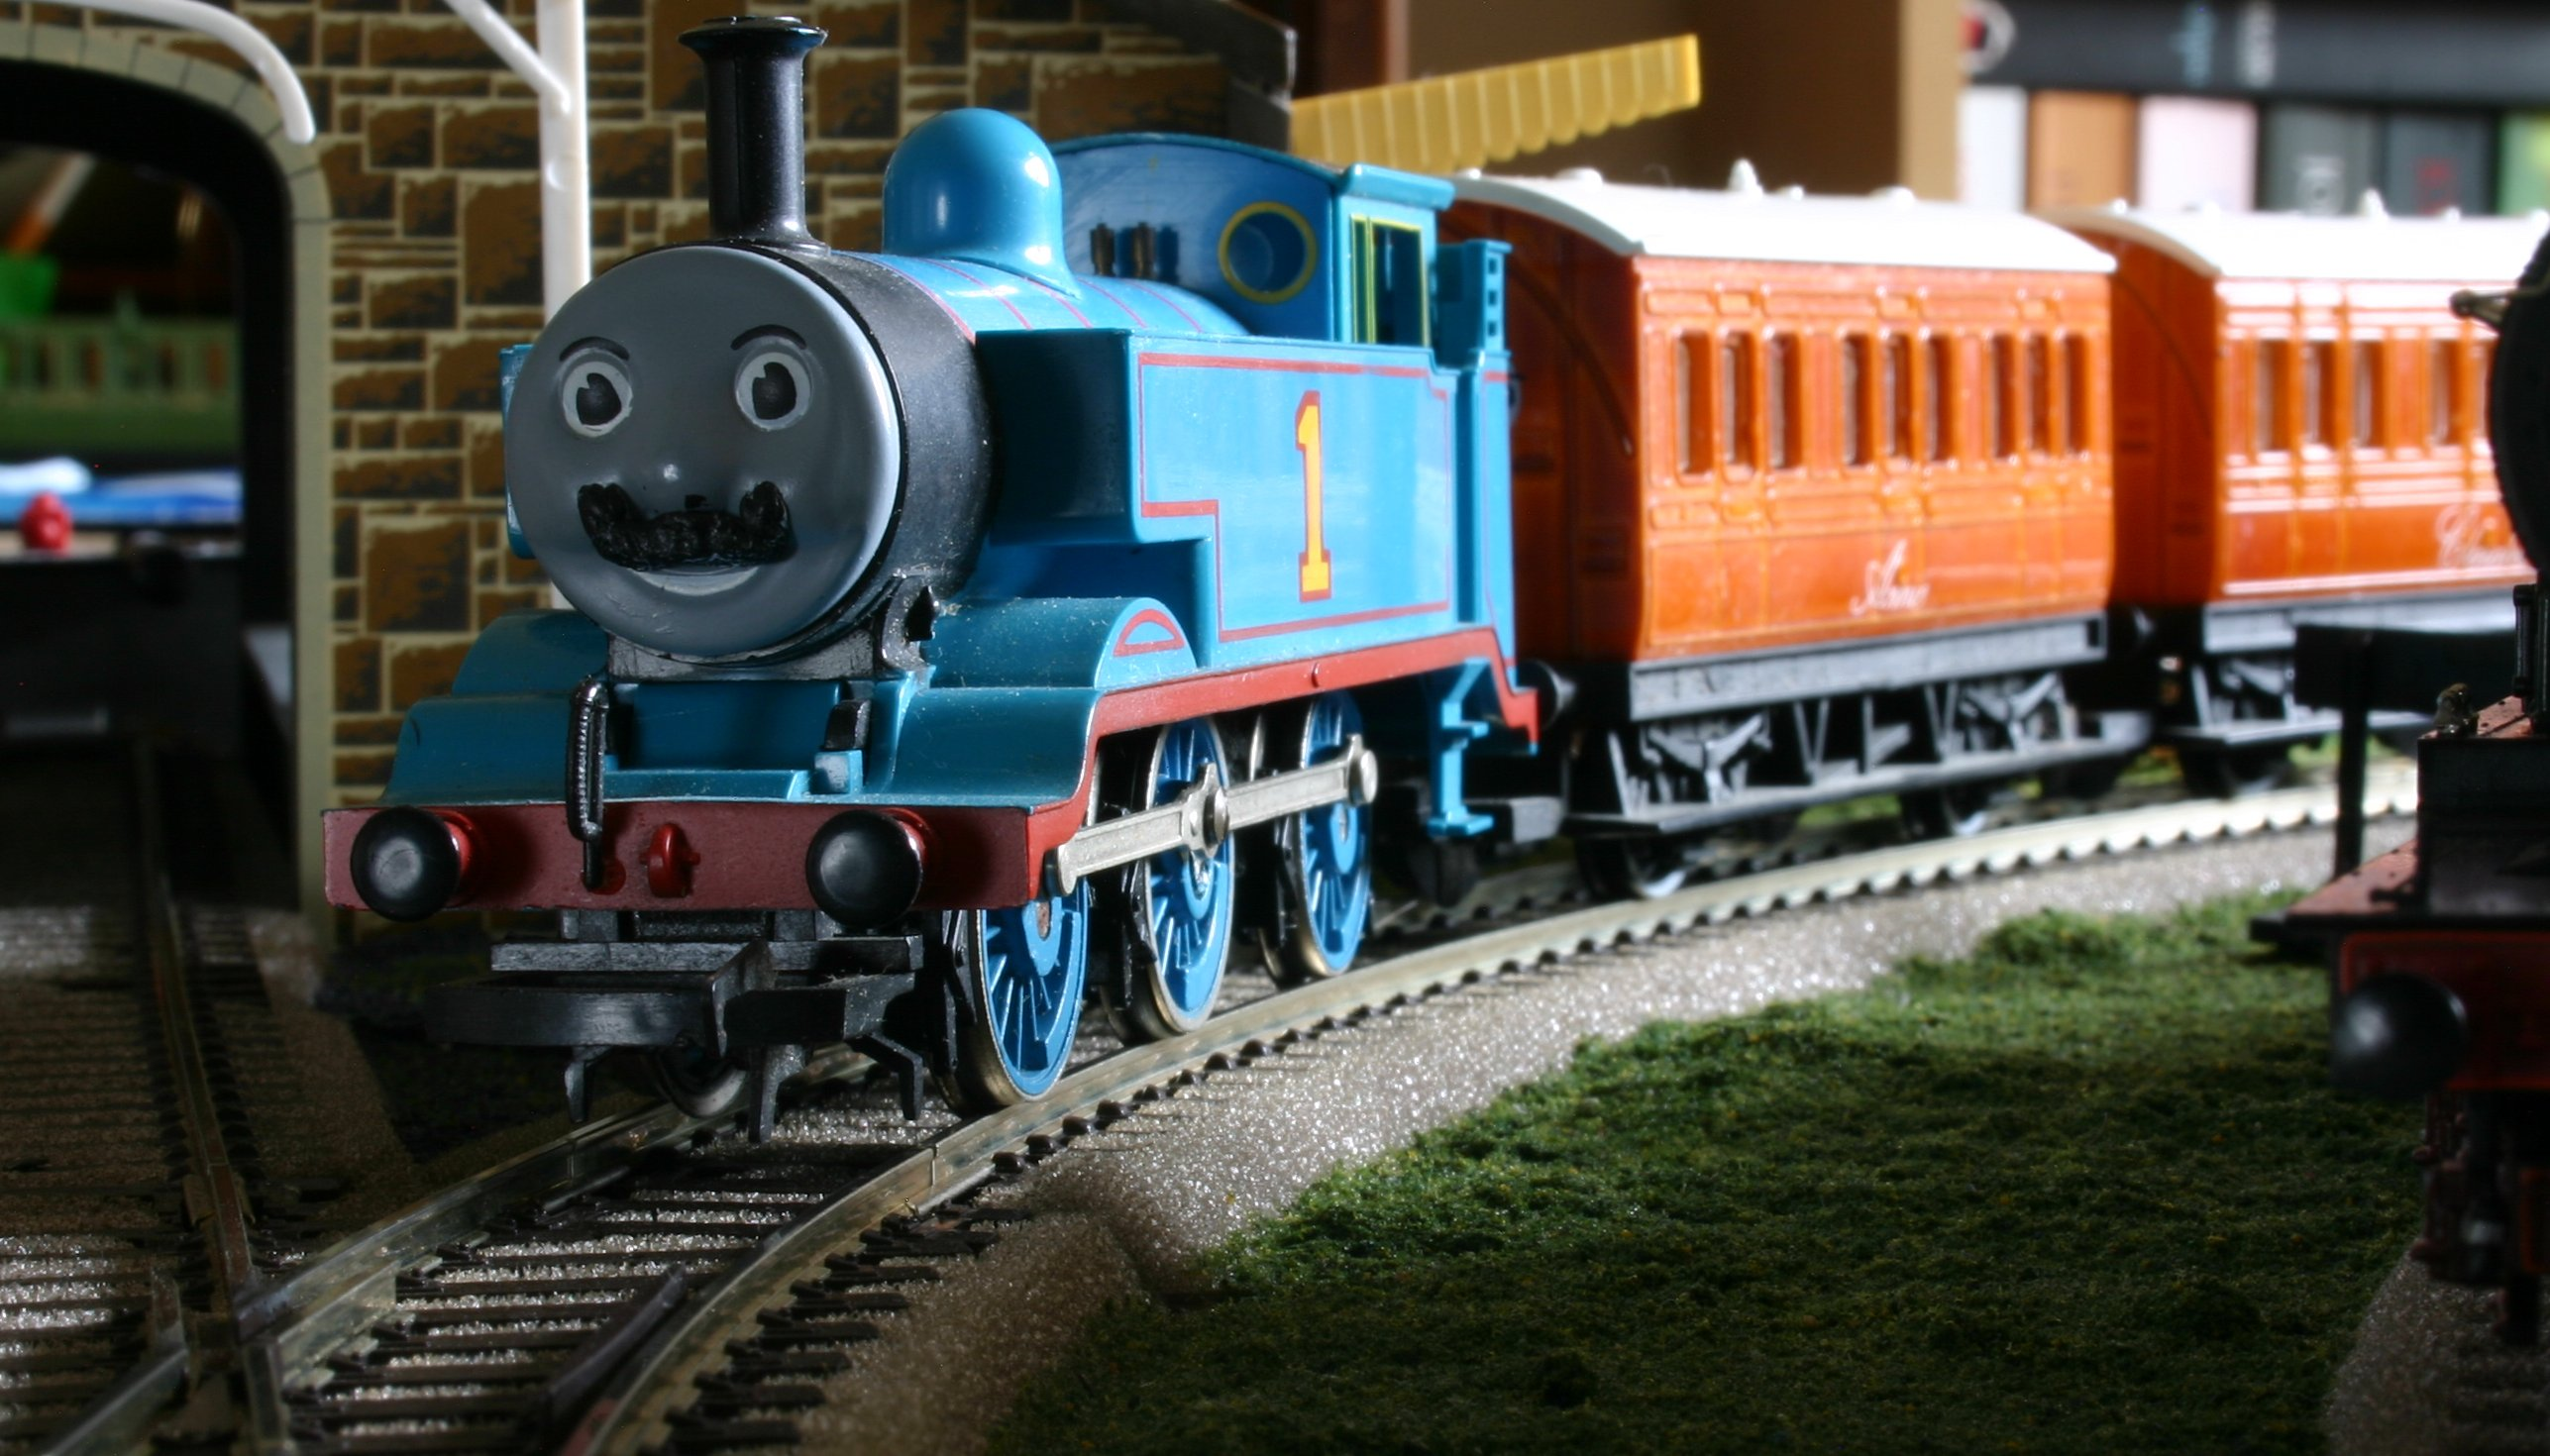 Thomas the tank engine movember at locoyard with annie and clarabel